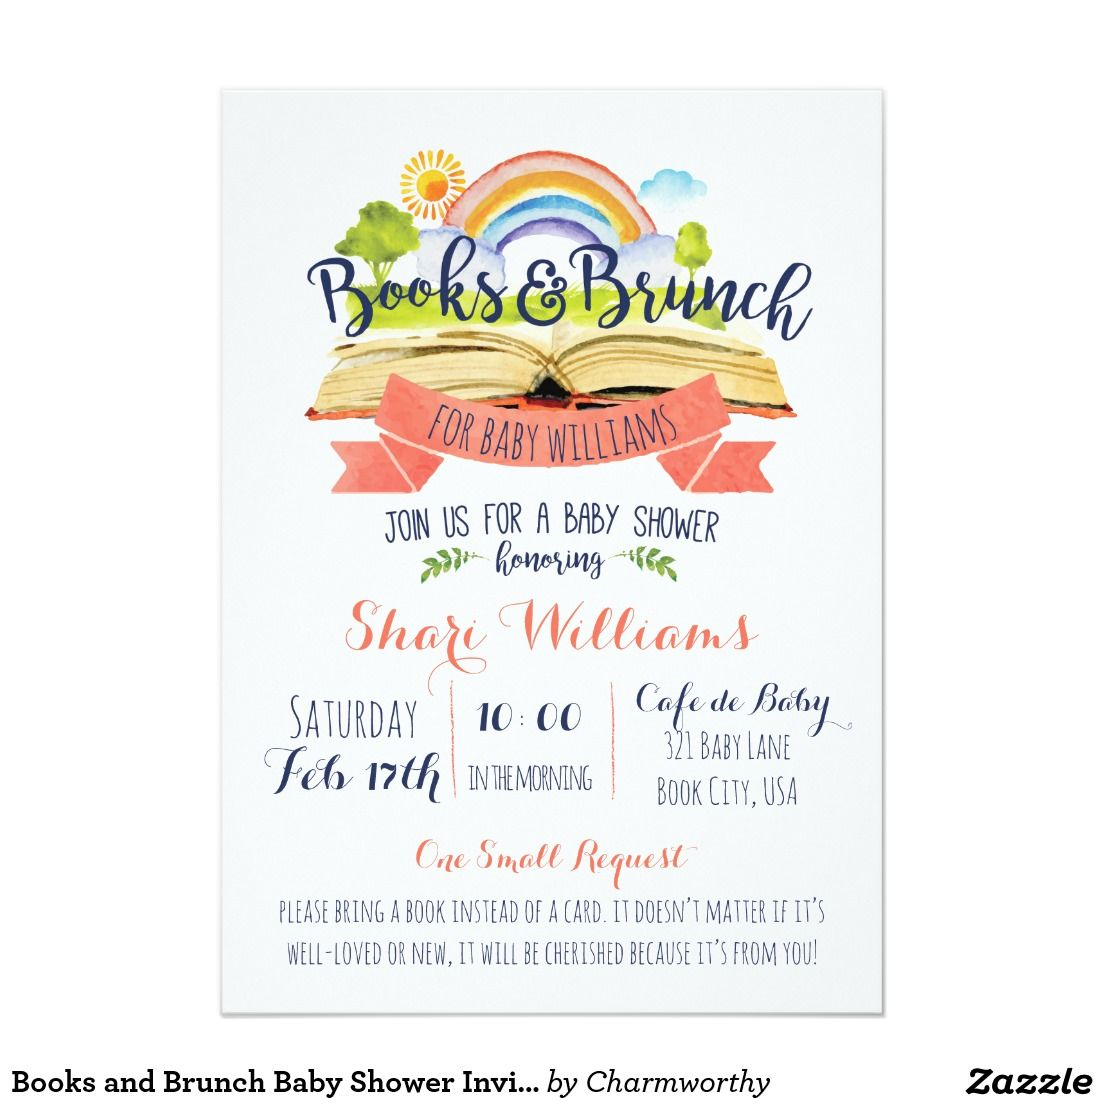 Books and Brunch Baby Shower Invitation | Shower invitations